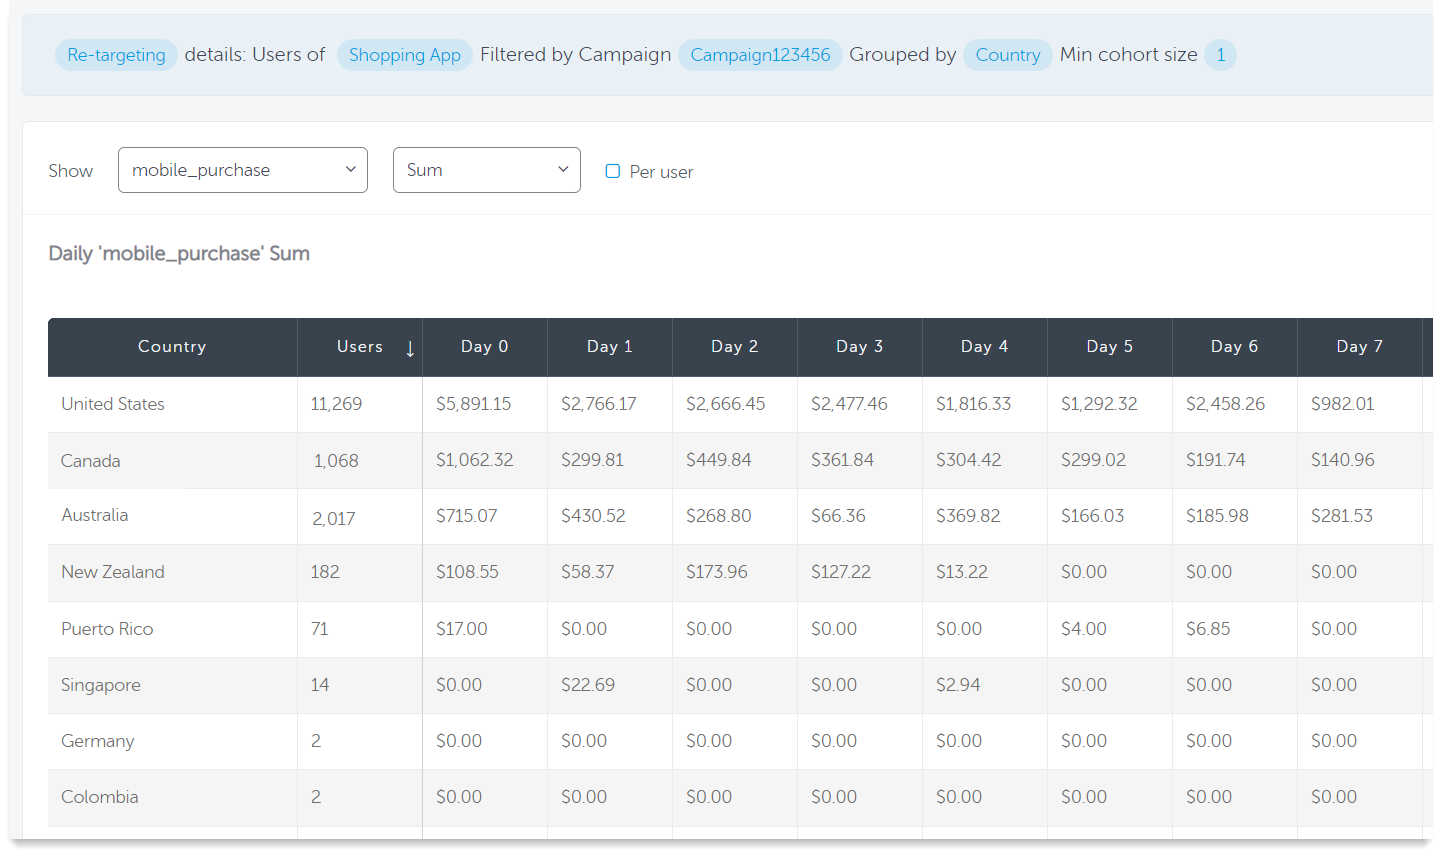 AppsFlyer Cohort report for shopping campaign revenue grouped by country